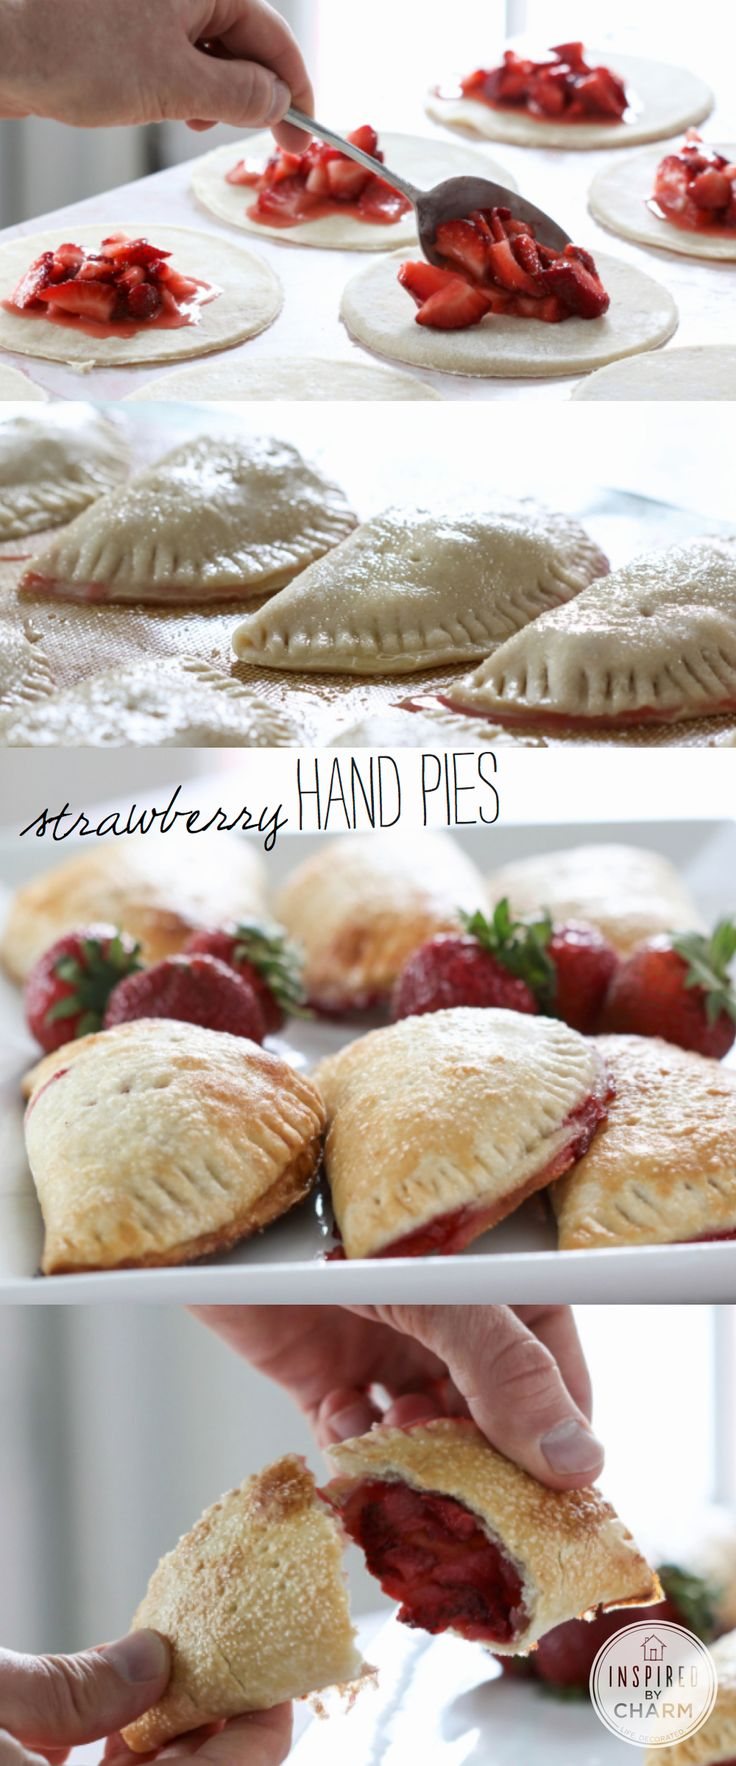 Strawberry Hand Pies | via @Michael Wurm Jr. | Inspired by Charm